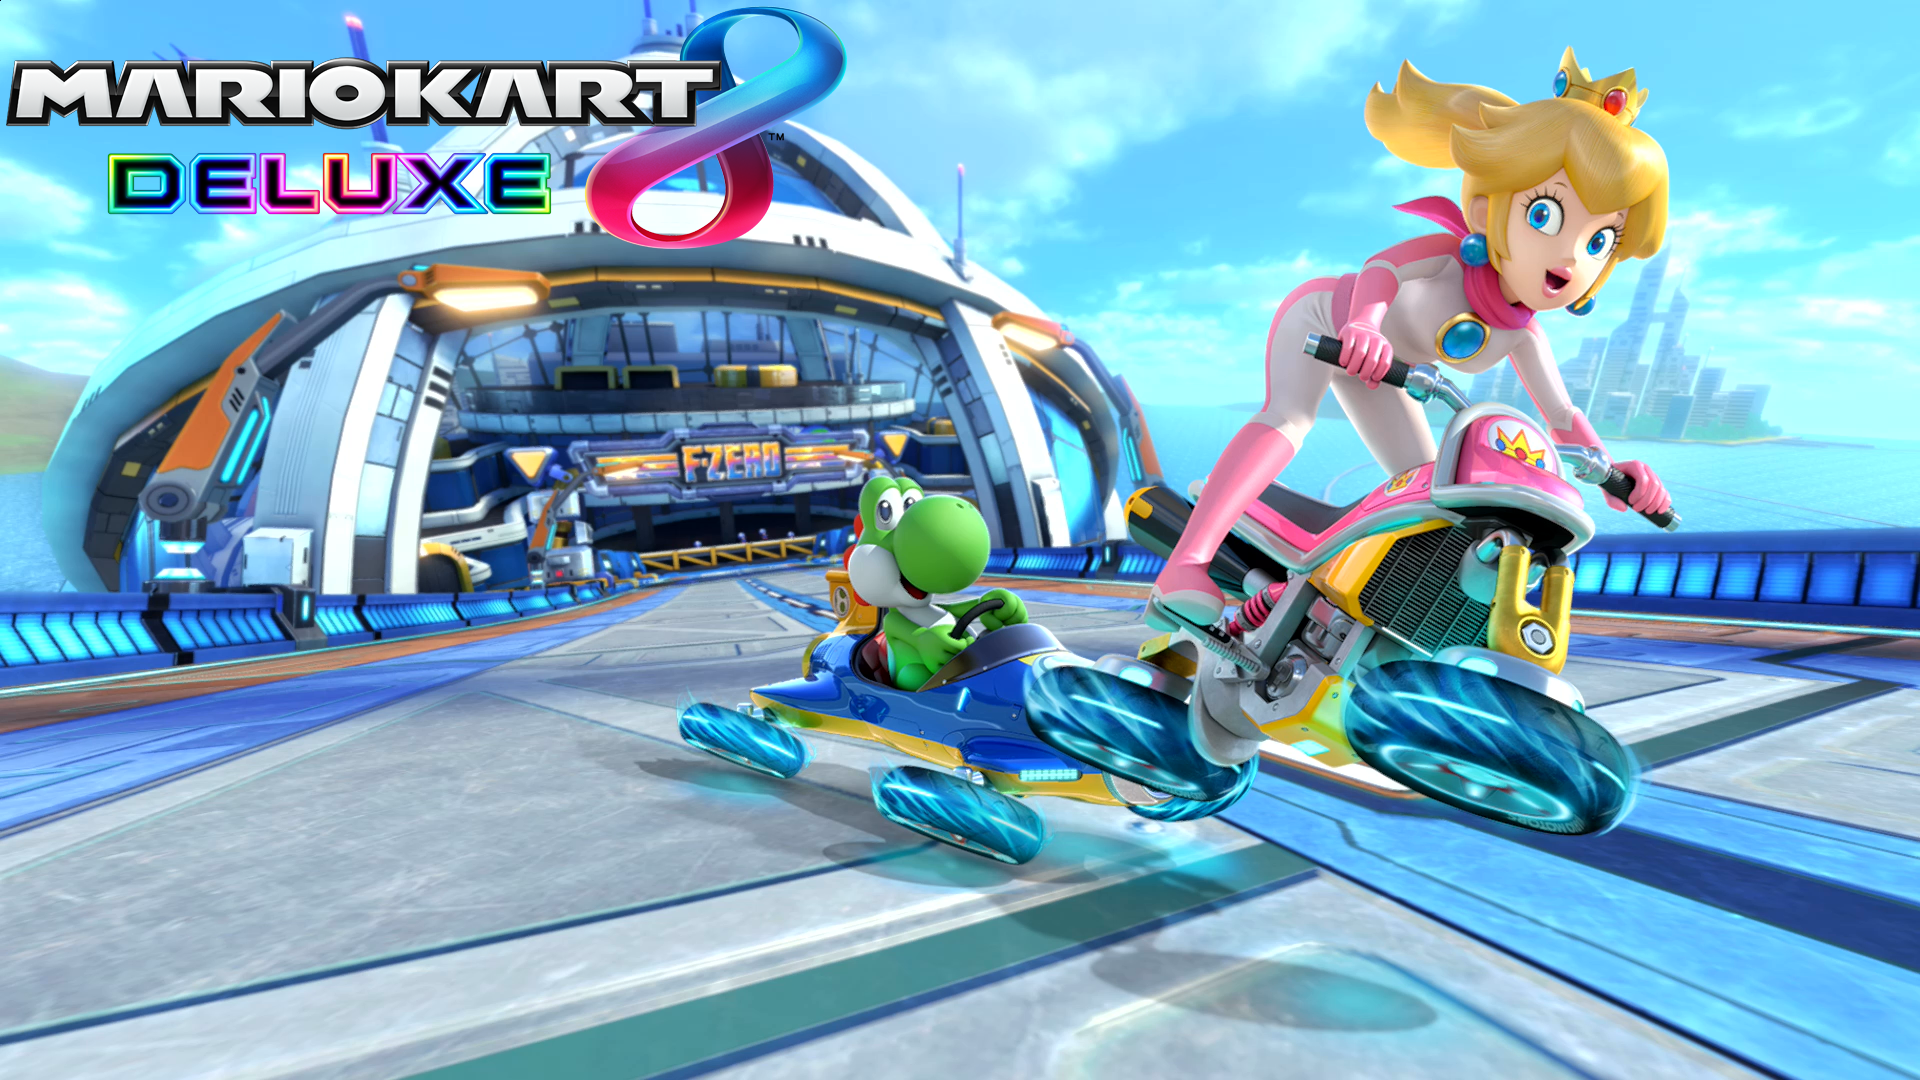 13 Mario Kart 8 Deluxe Hd Wallpapers Background Images